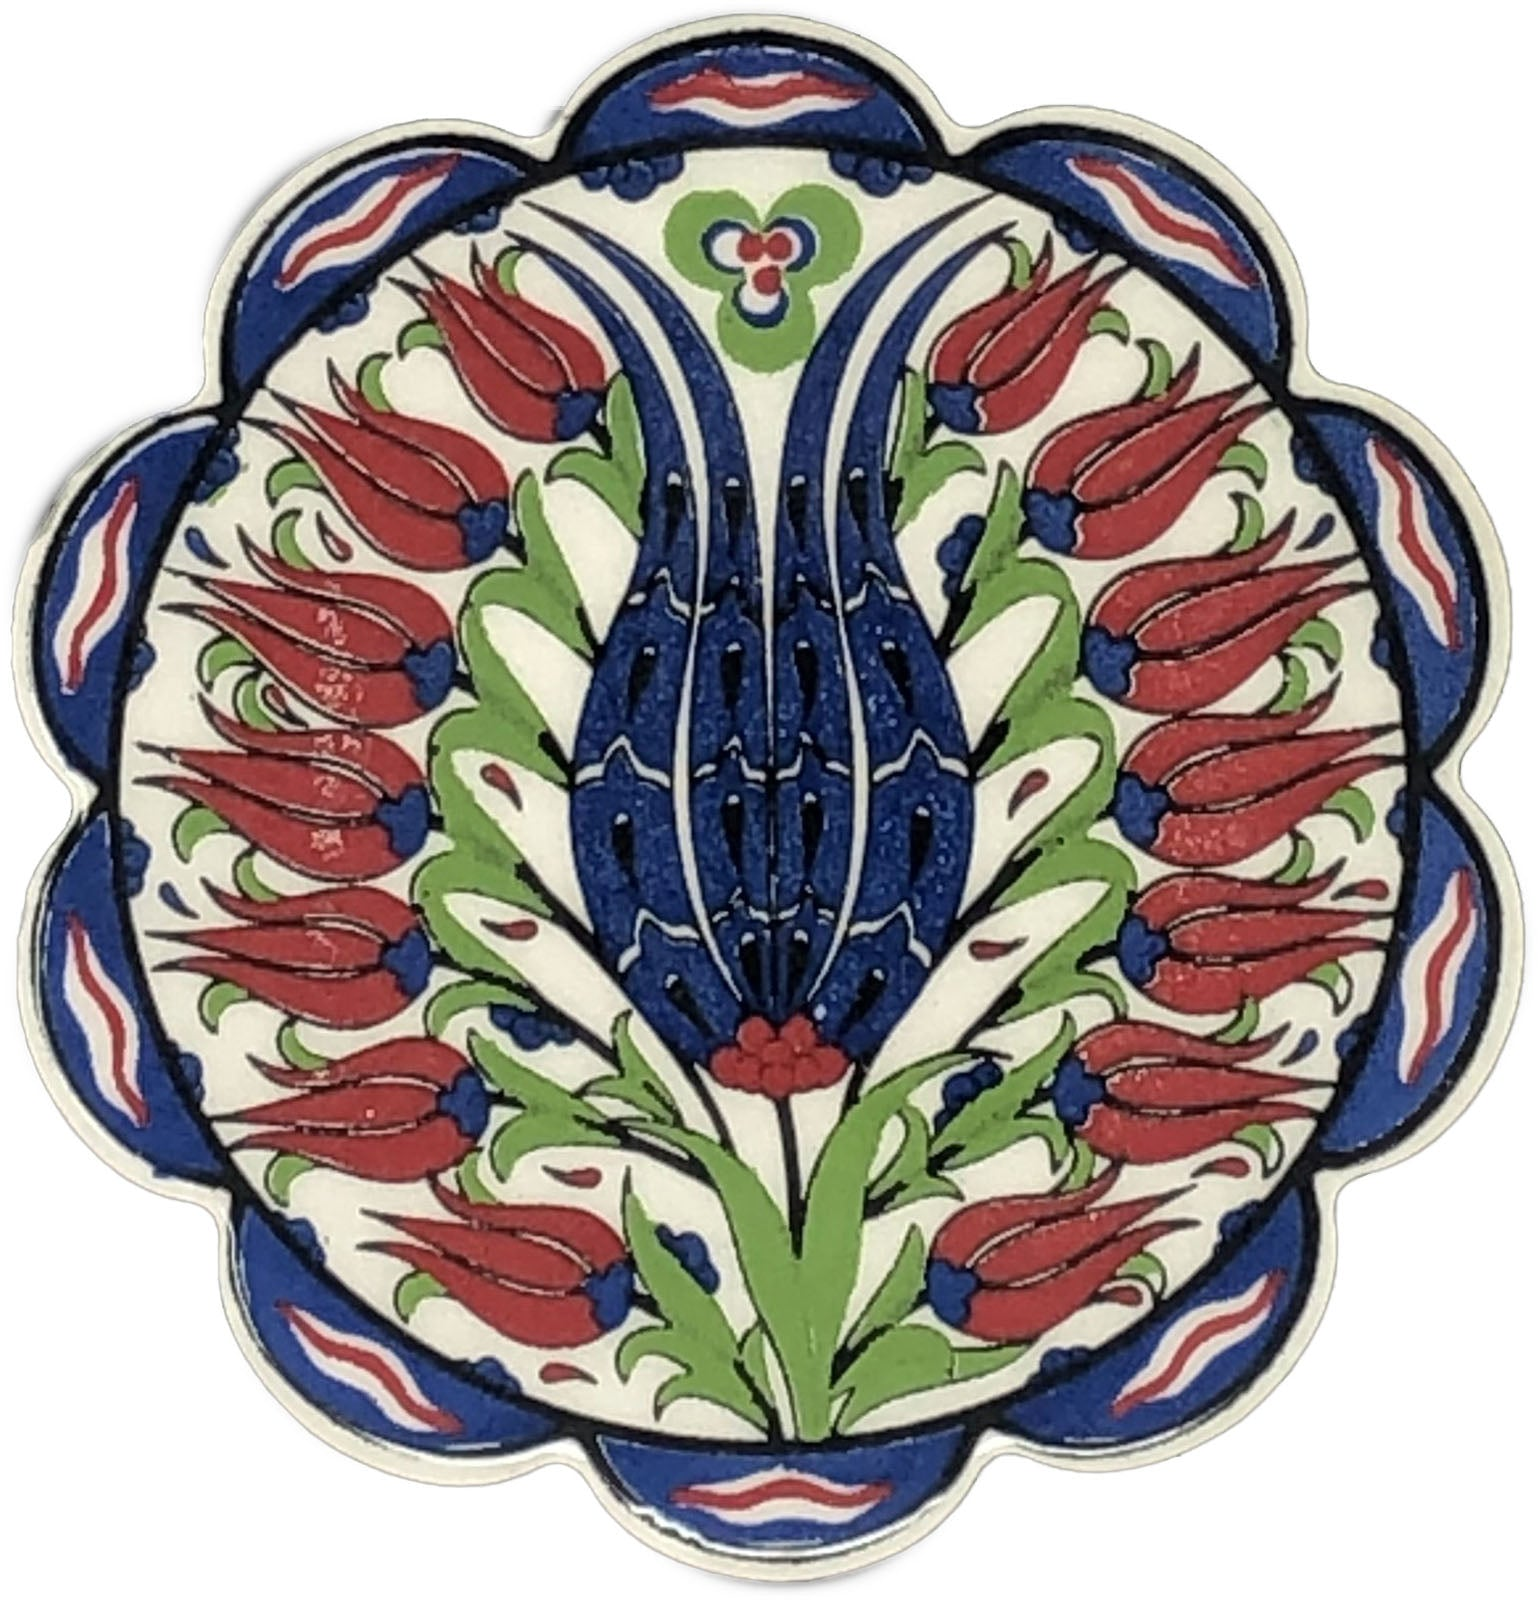 Traditional Turkish 11cm Ceramic Daisy Coaster 008